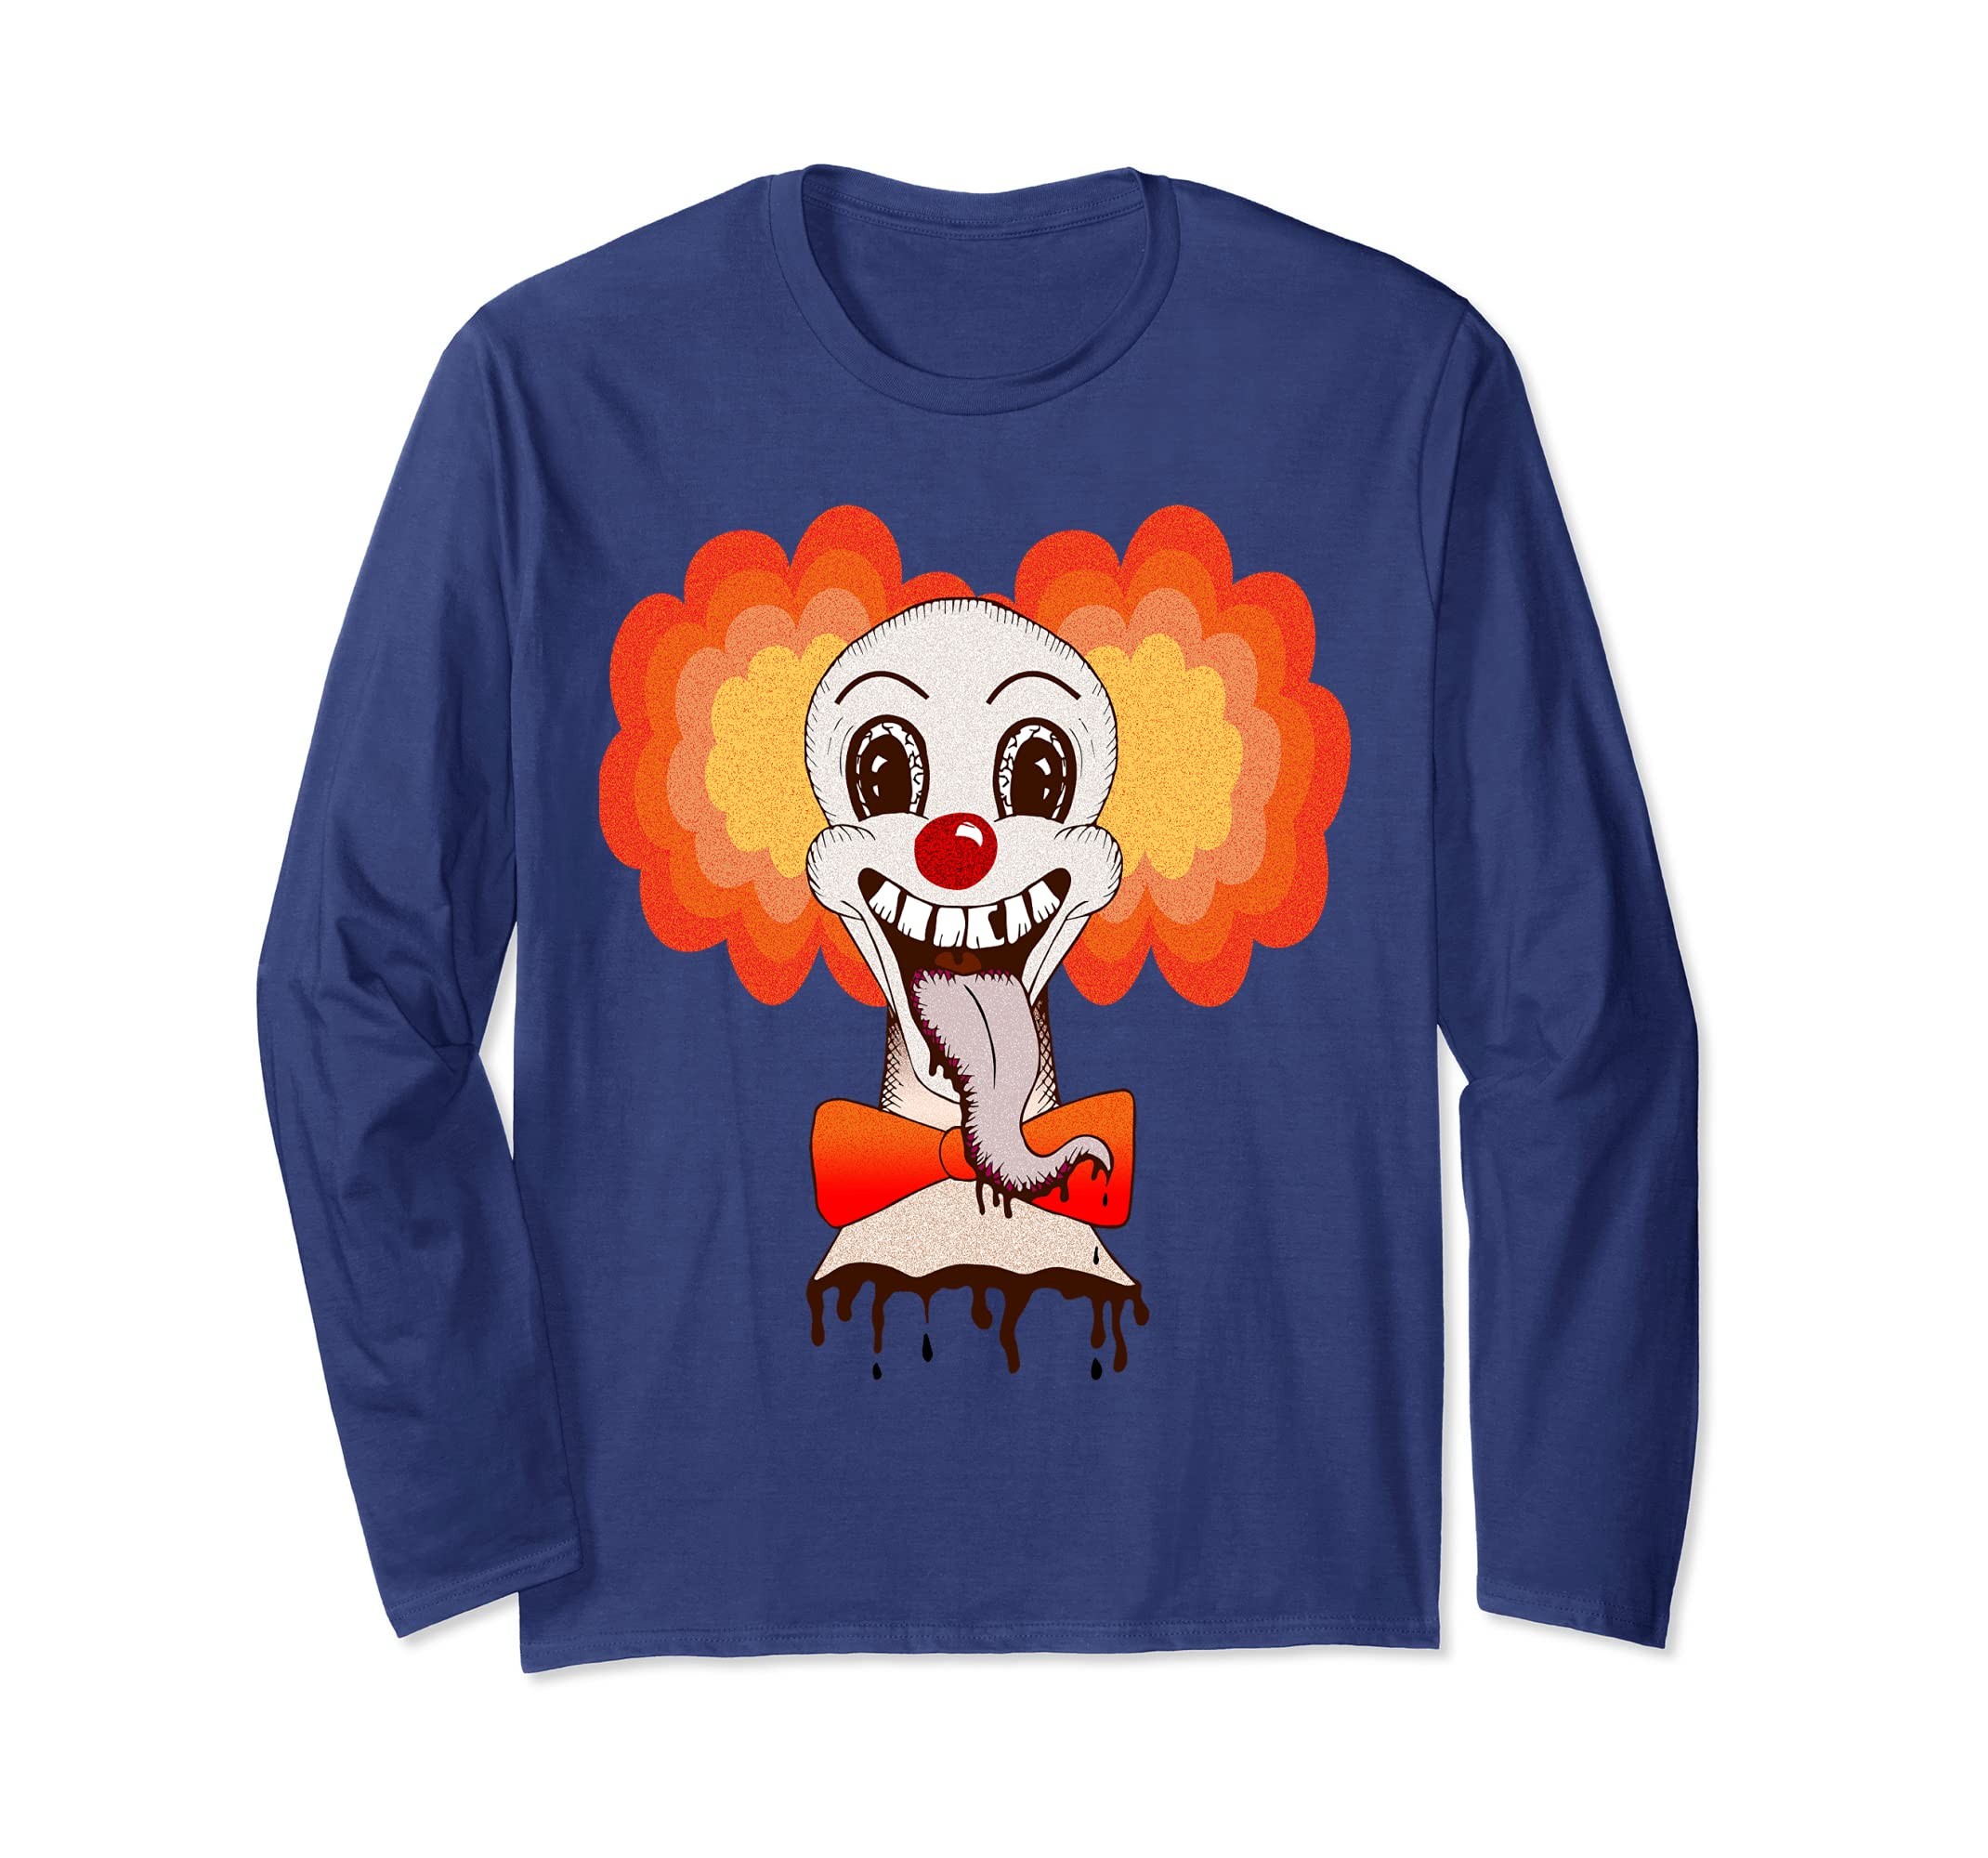 Halloween Scary Clown T Shirt Anz Anztshirt